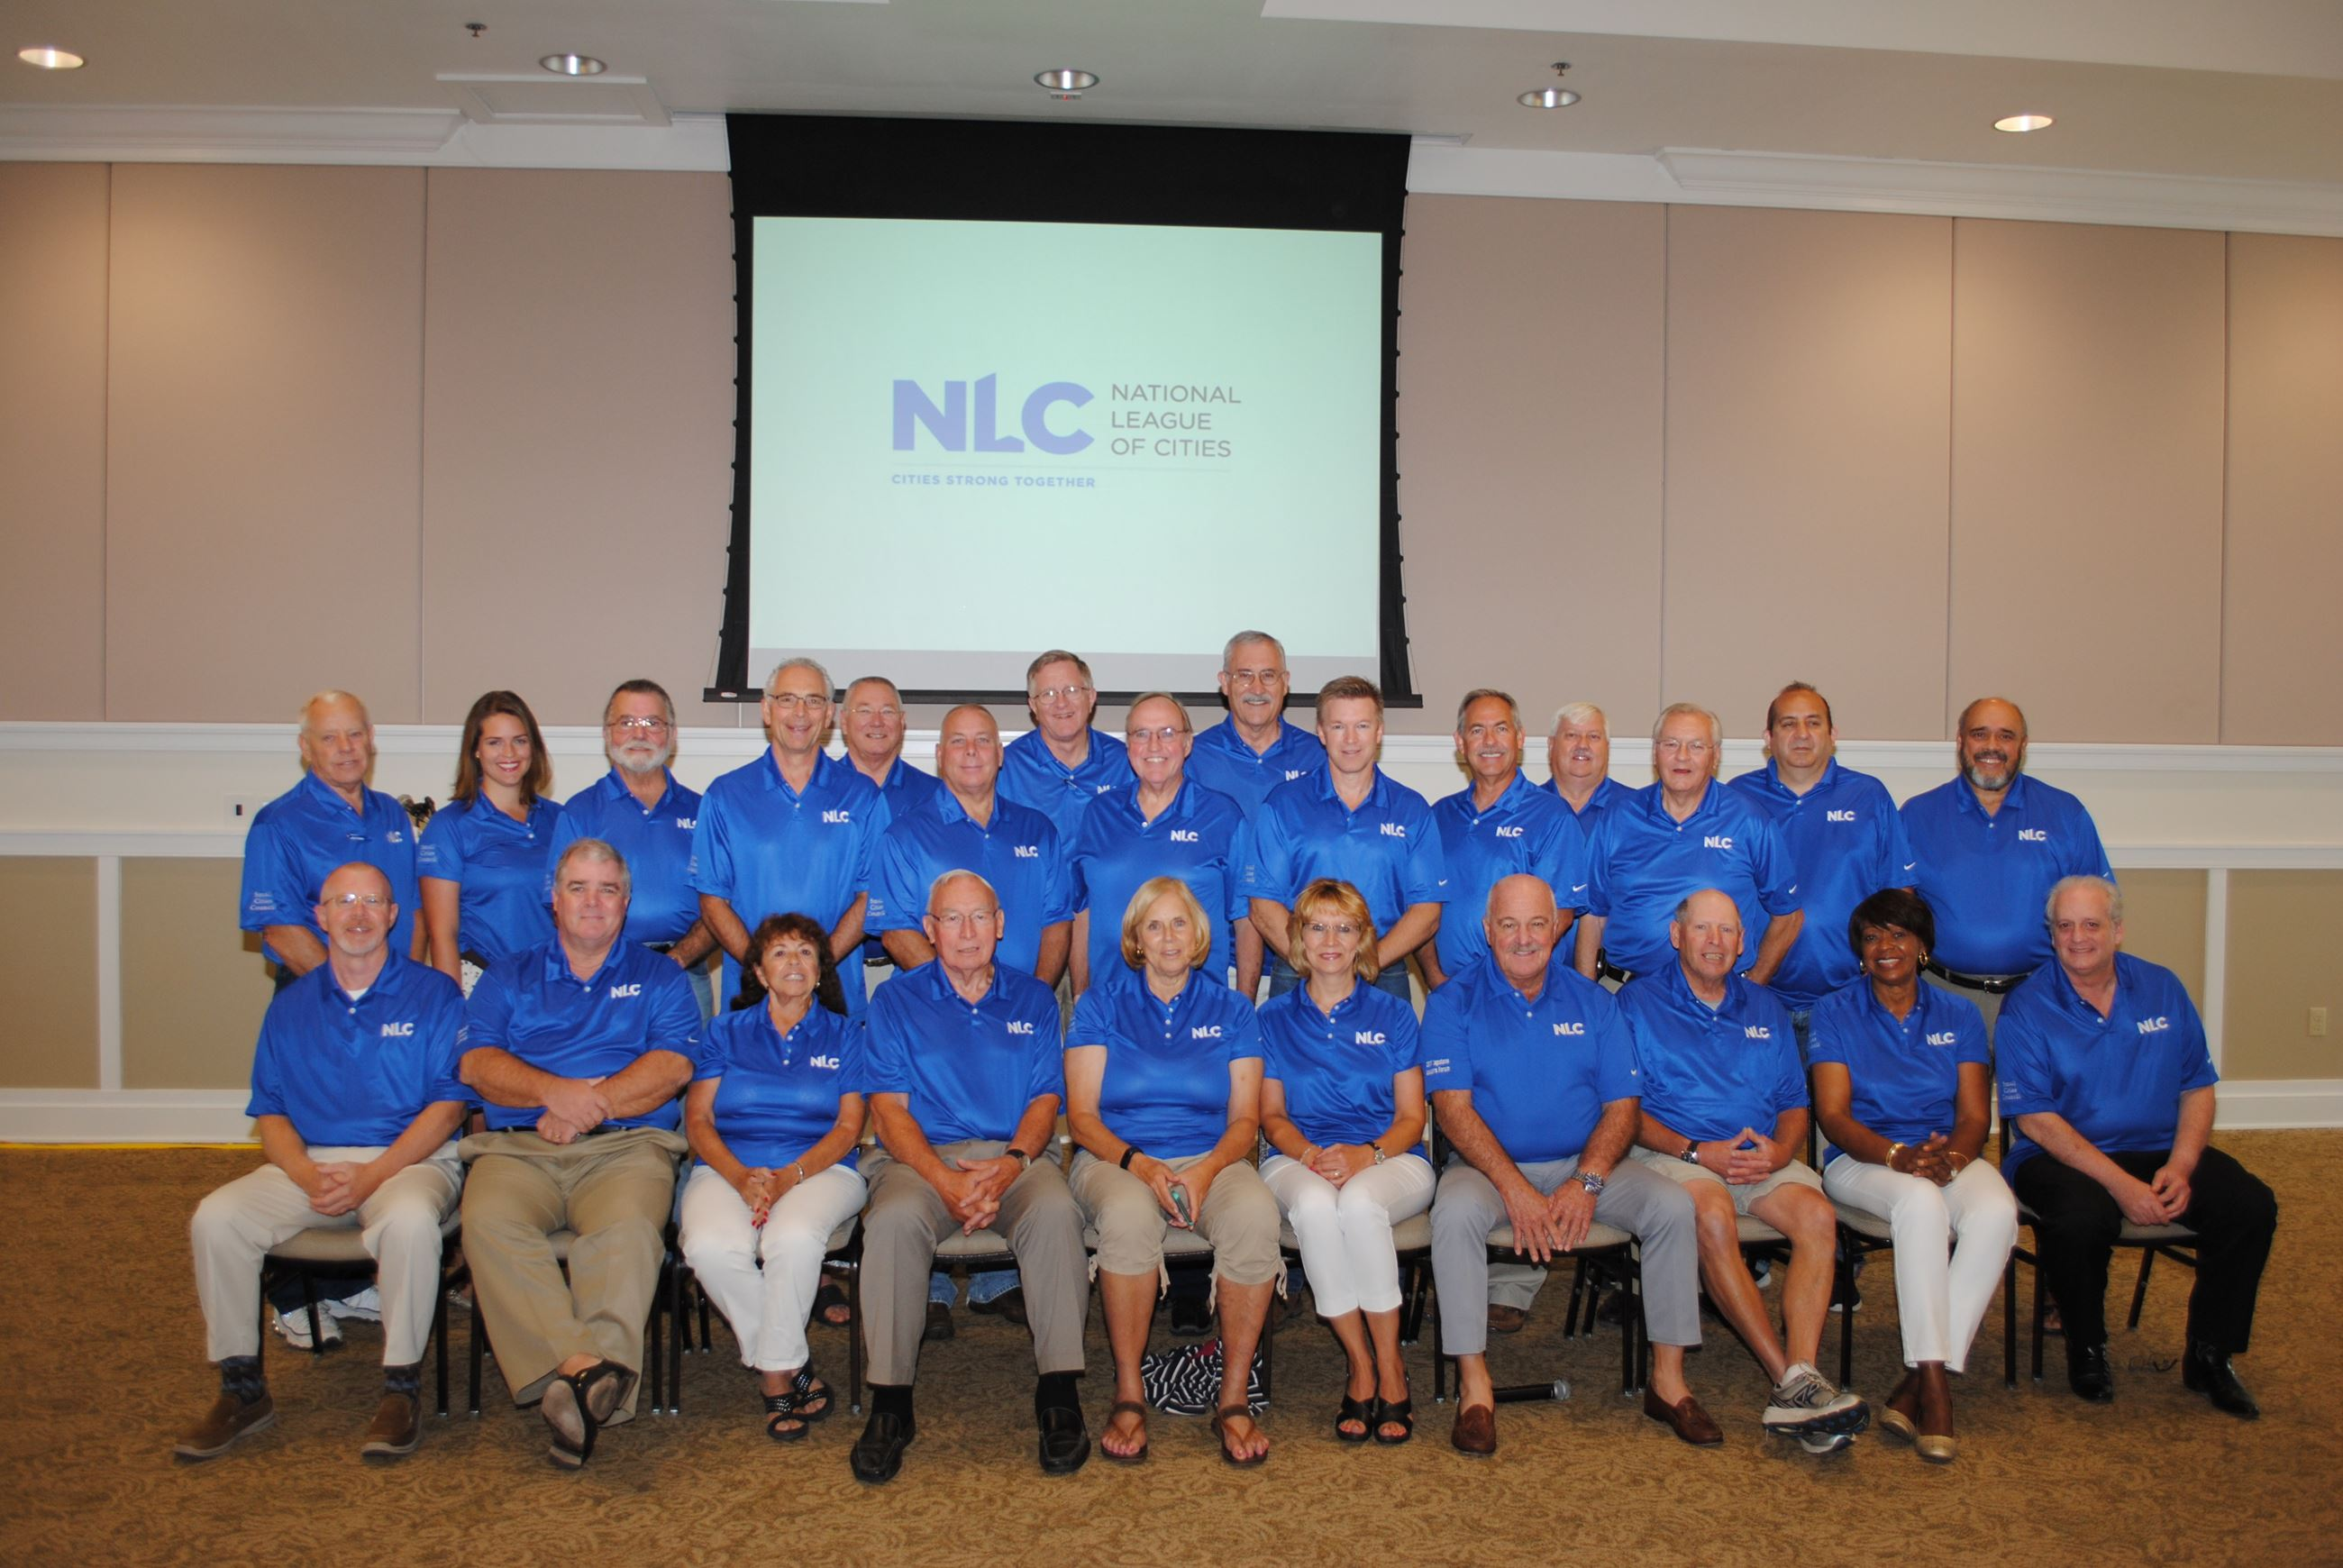 NLC Small Cities Council 7-21-17 (JPG)